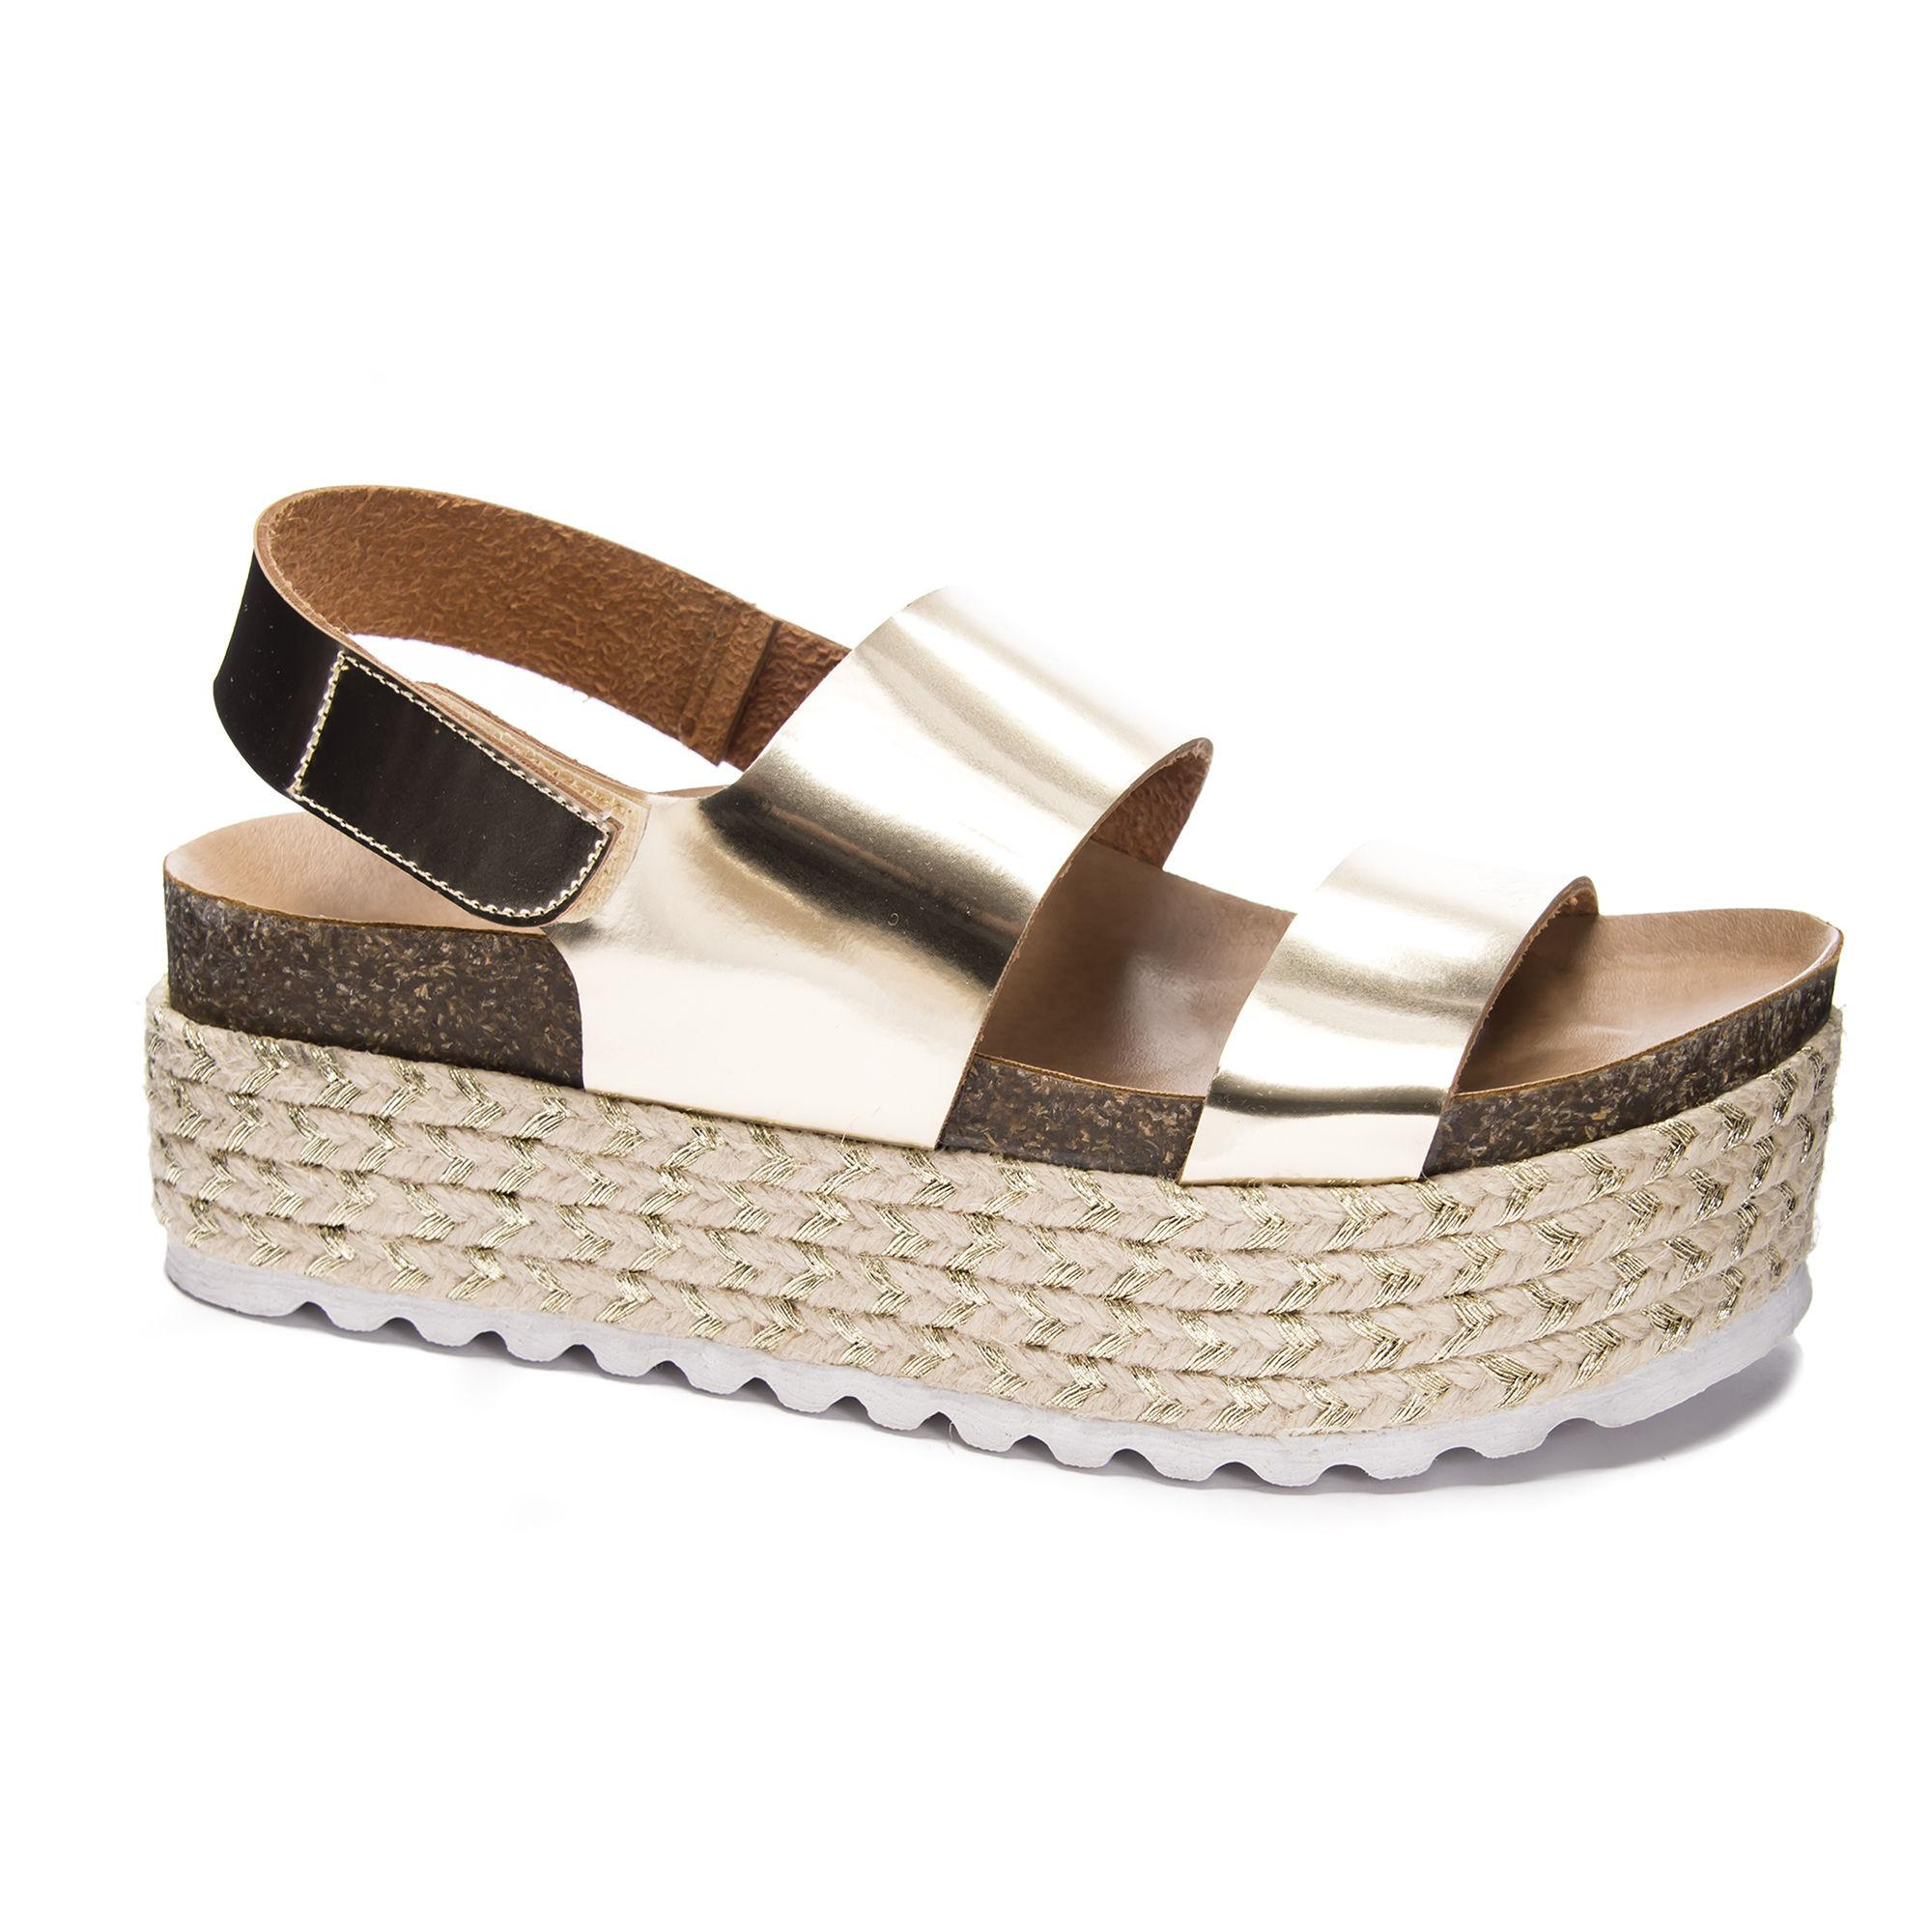 1bc7b4dccede Lyst - Dirty Laundry Peyton Platform Sandal in Metallic